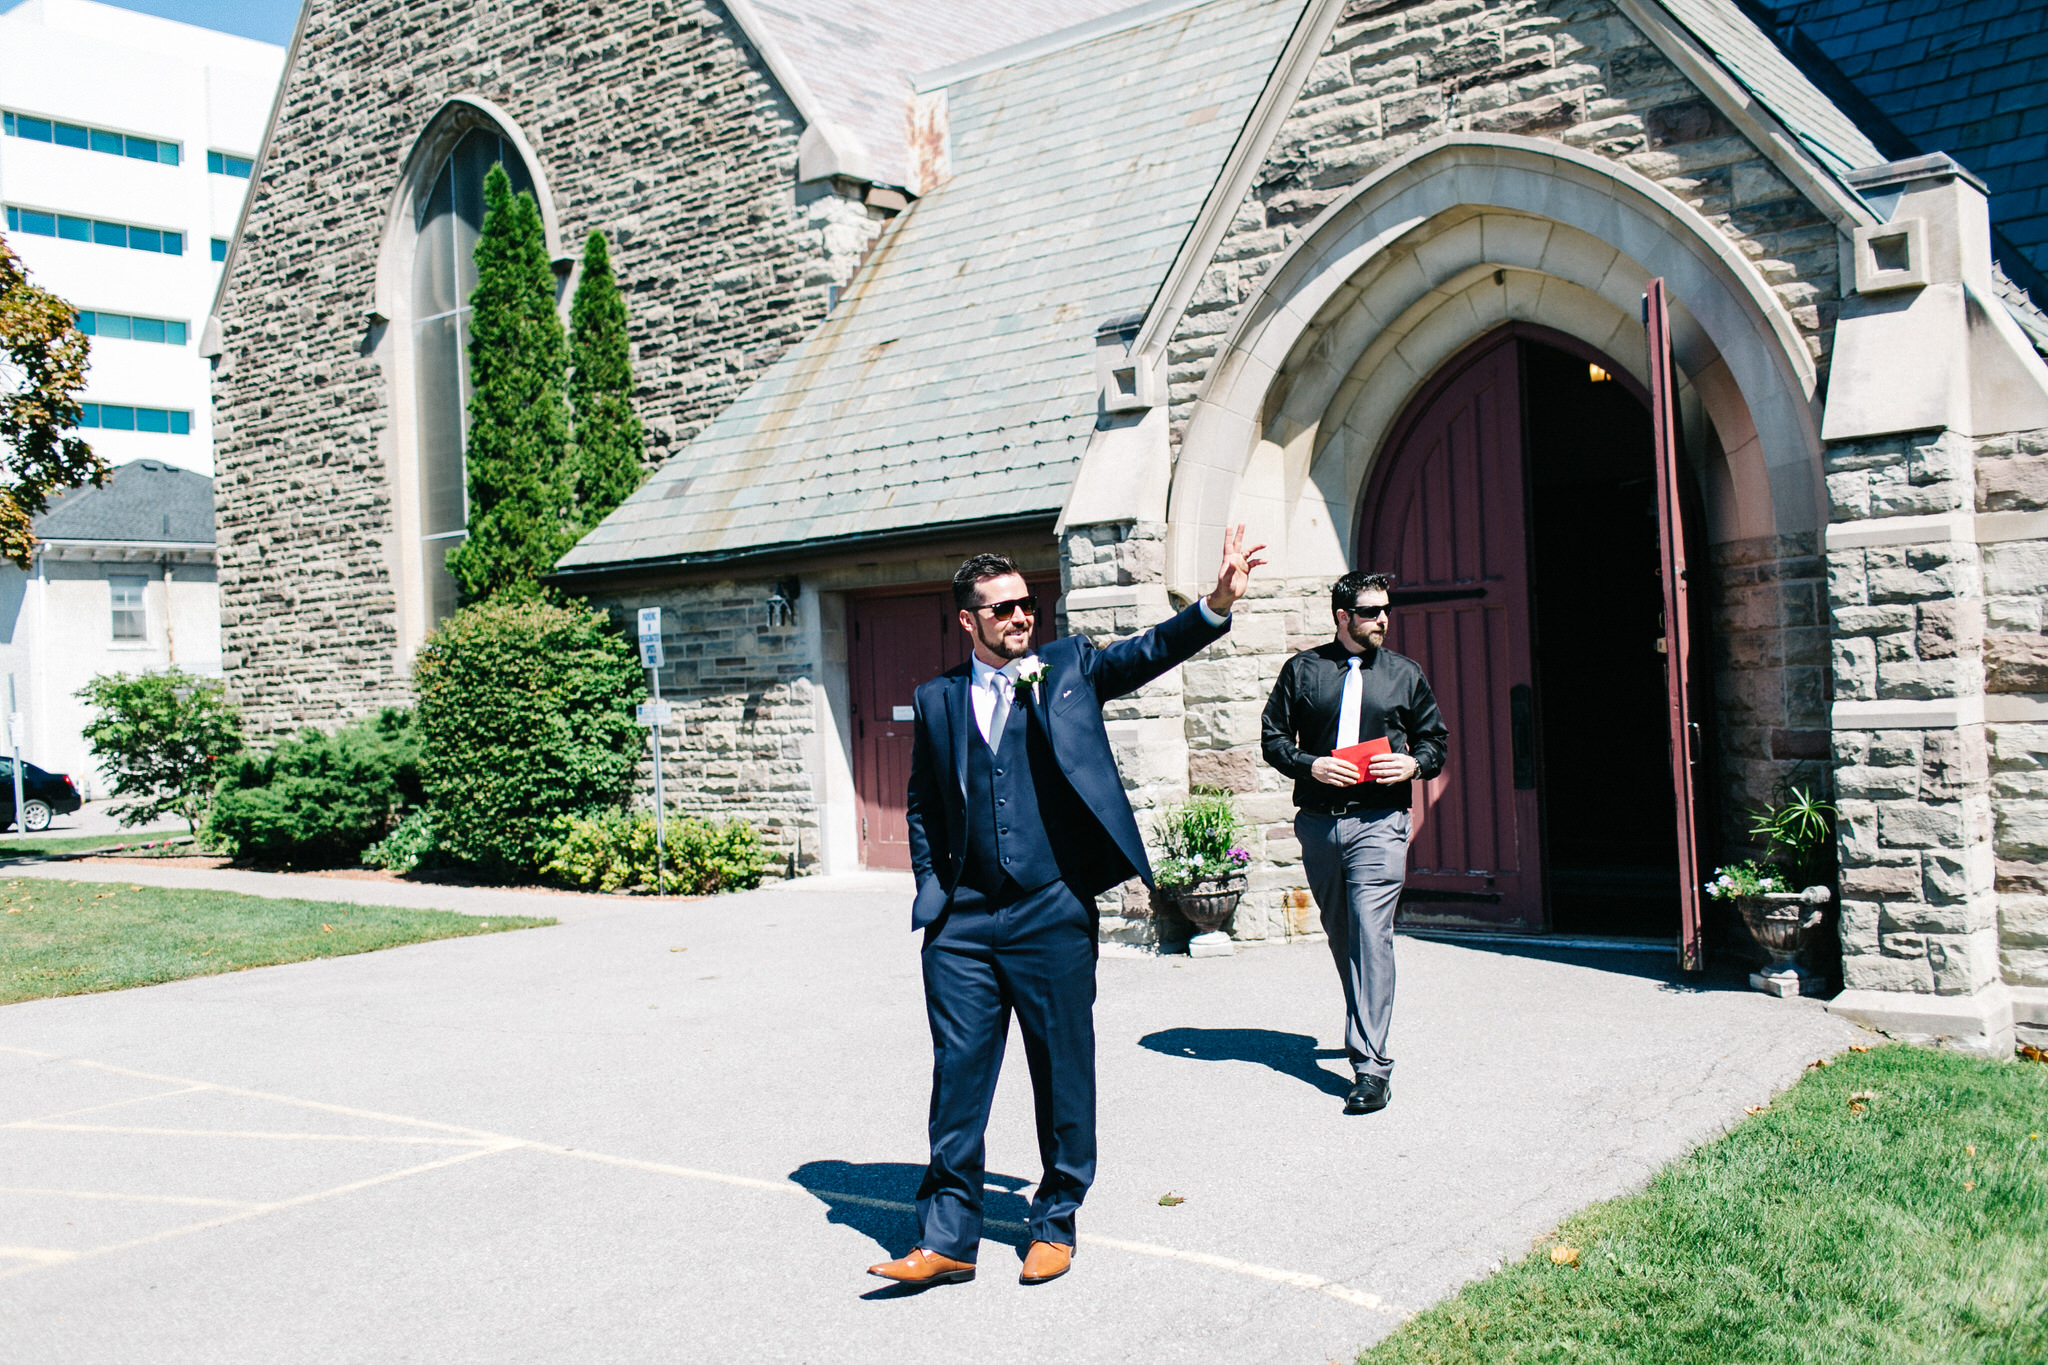 St. George Anglican Oshawa, Toronto wedding photographer, parkwood estates oshawa